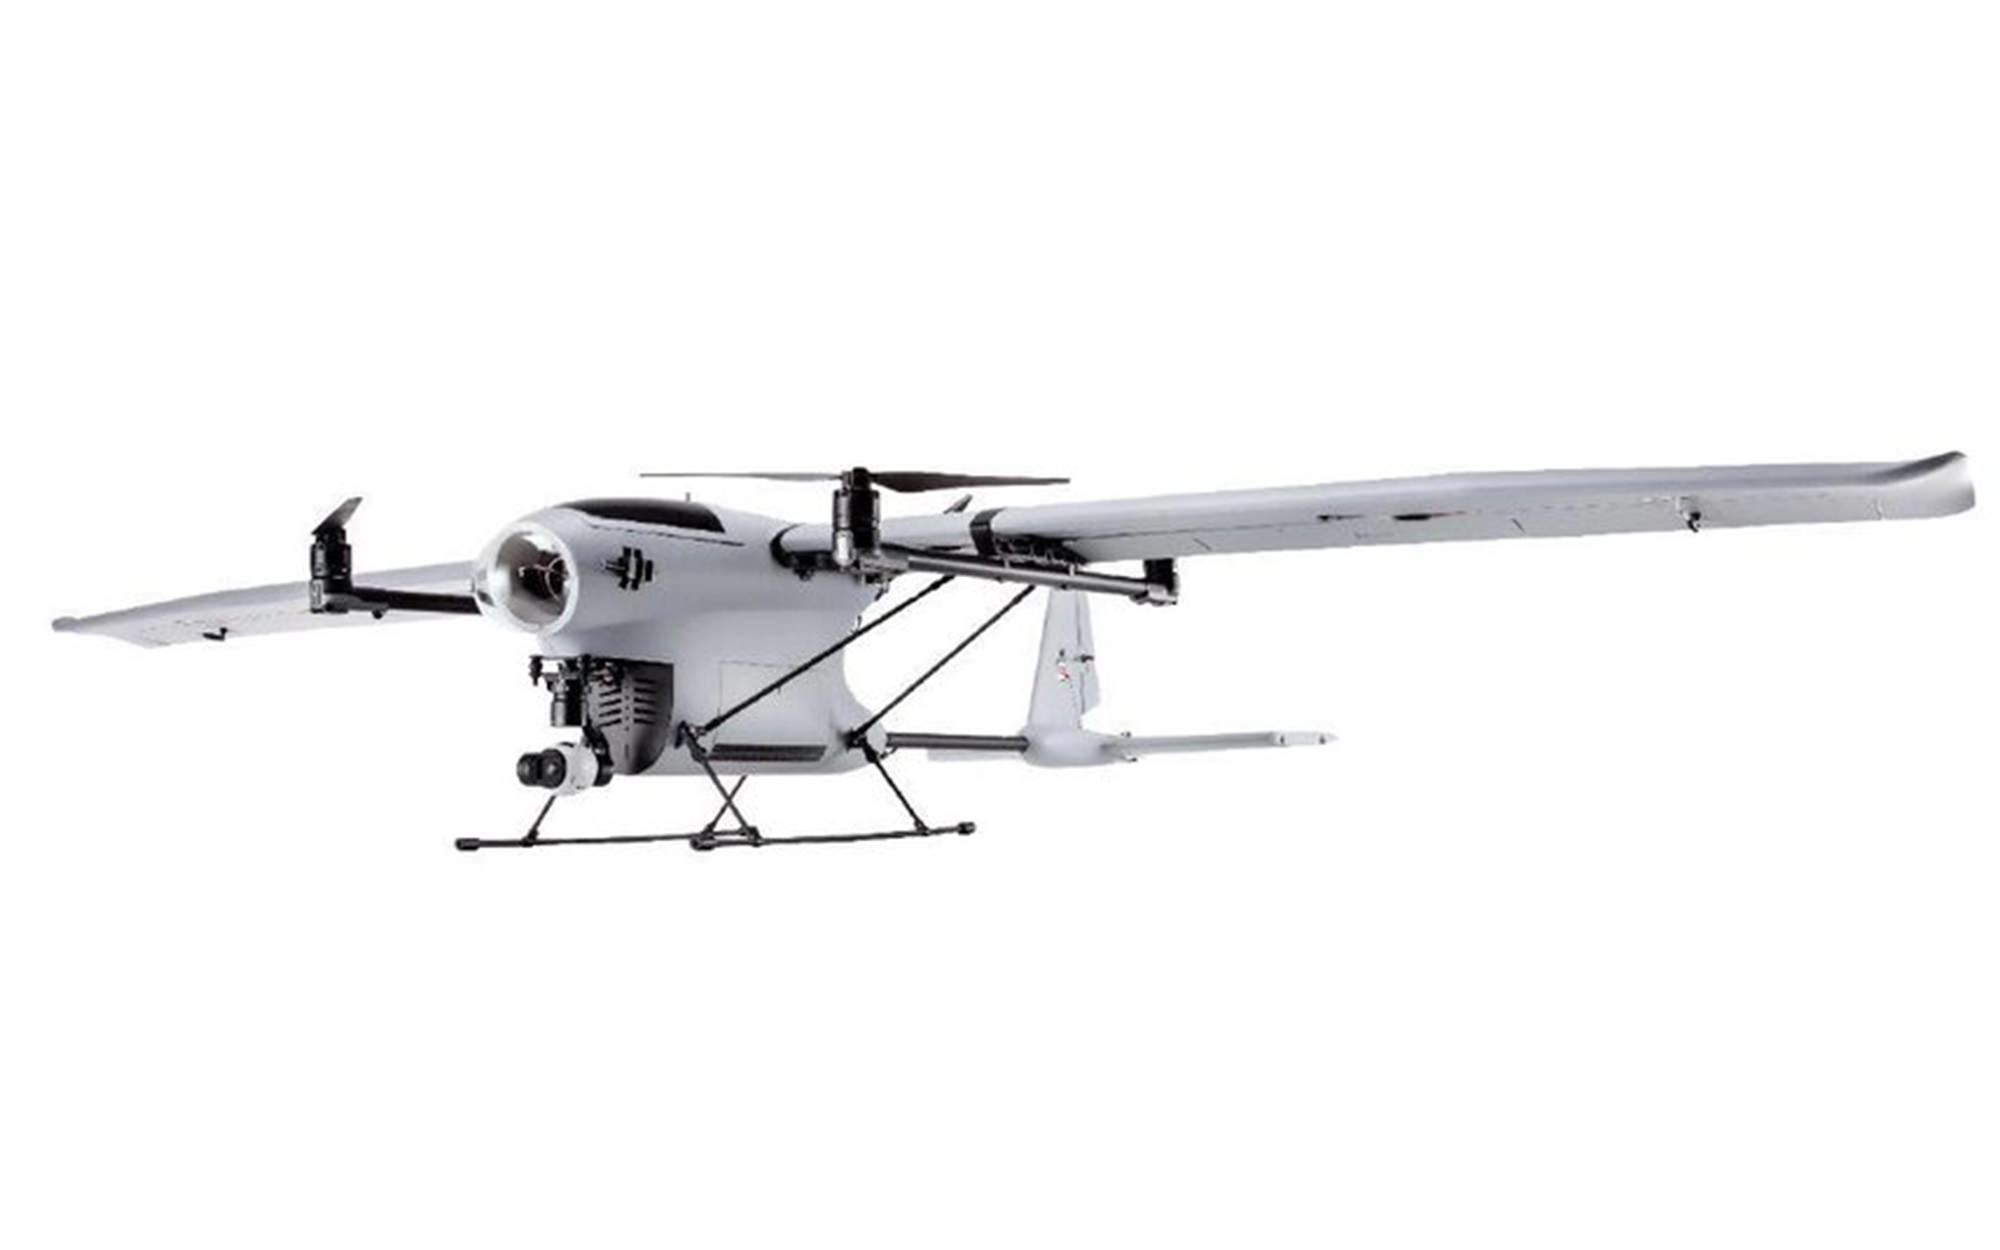 first-photos-and-specs-appear-of-djis-vtol-fixed-wing-drone-100.jpg